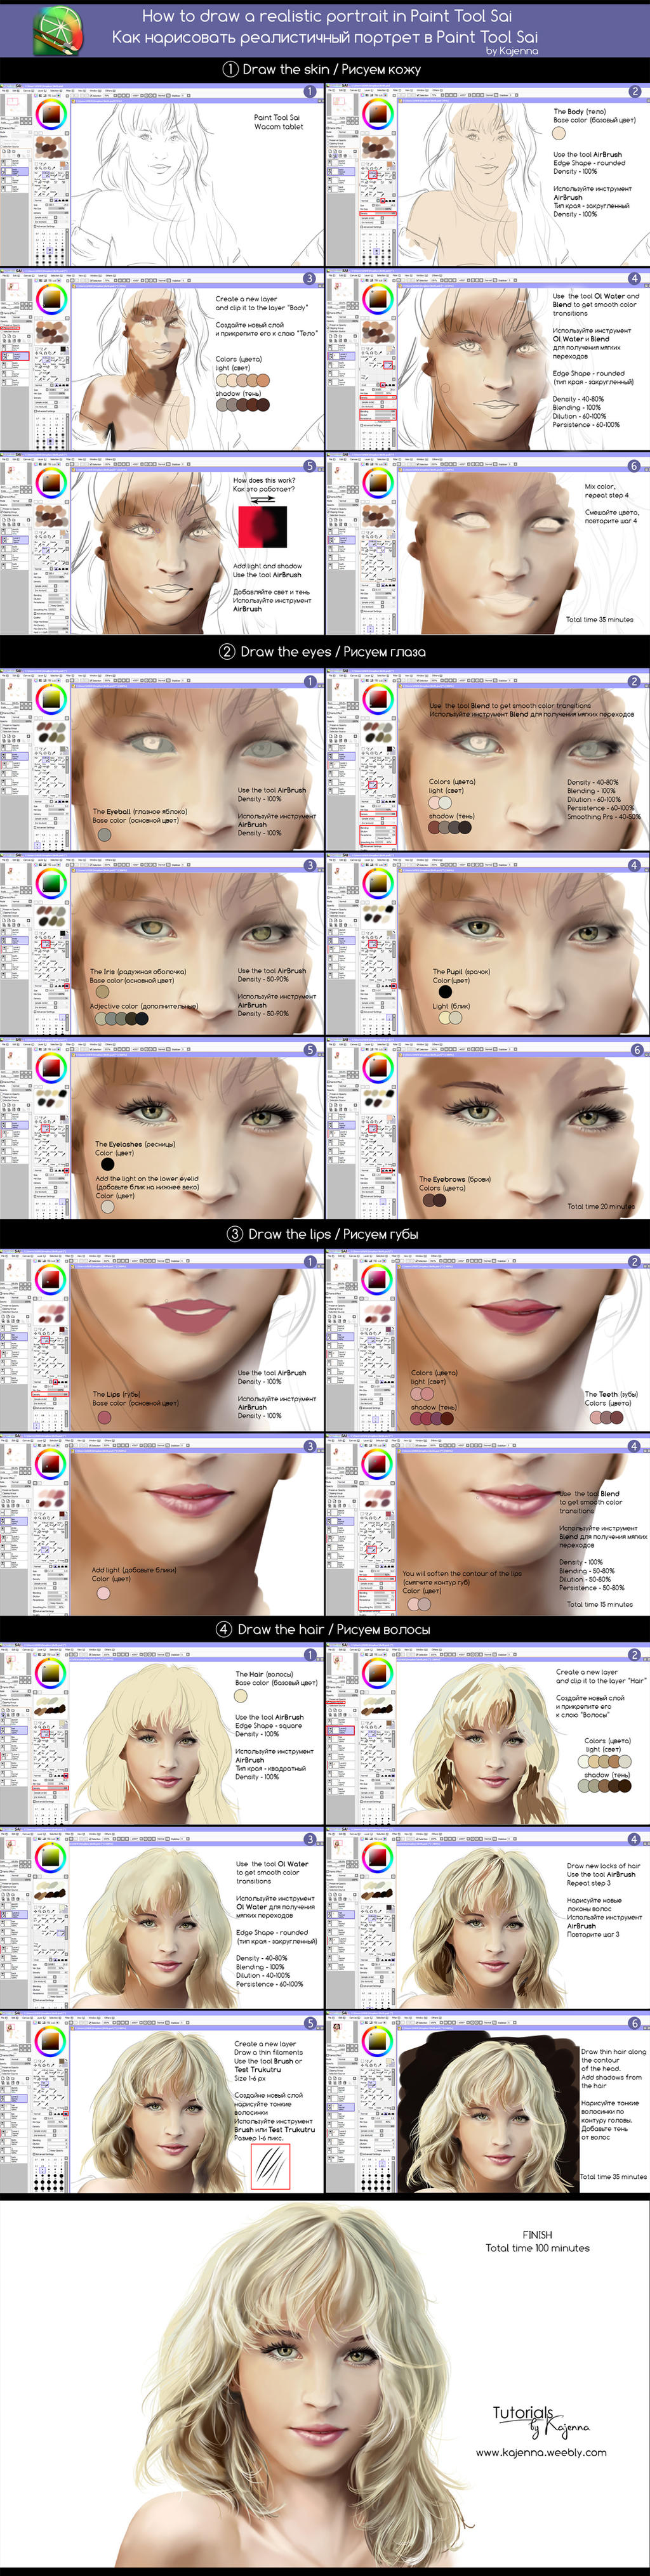 How to draw a realistic portrait in sai tutorial by kajenna on how to draw a realistic portrait in sai tutorial by kajenna ccuart Images